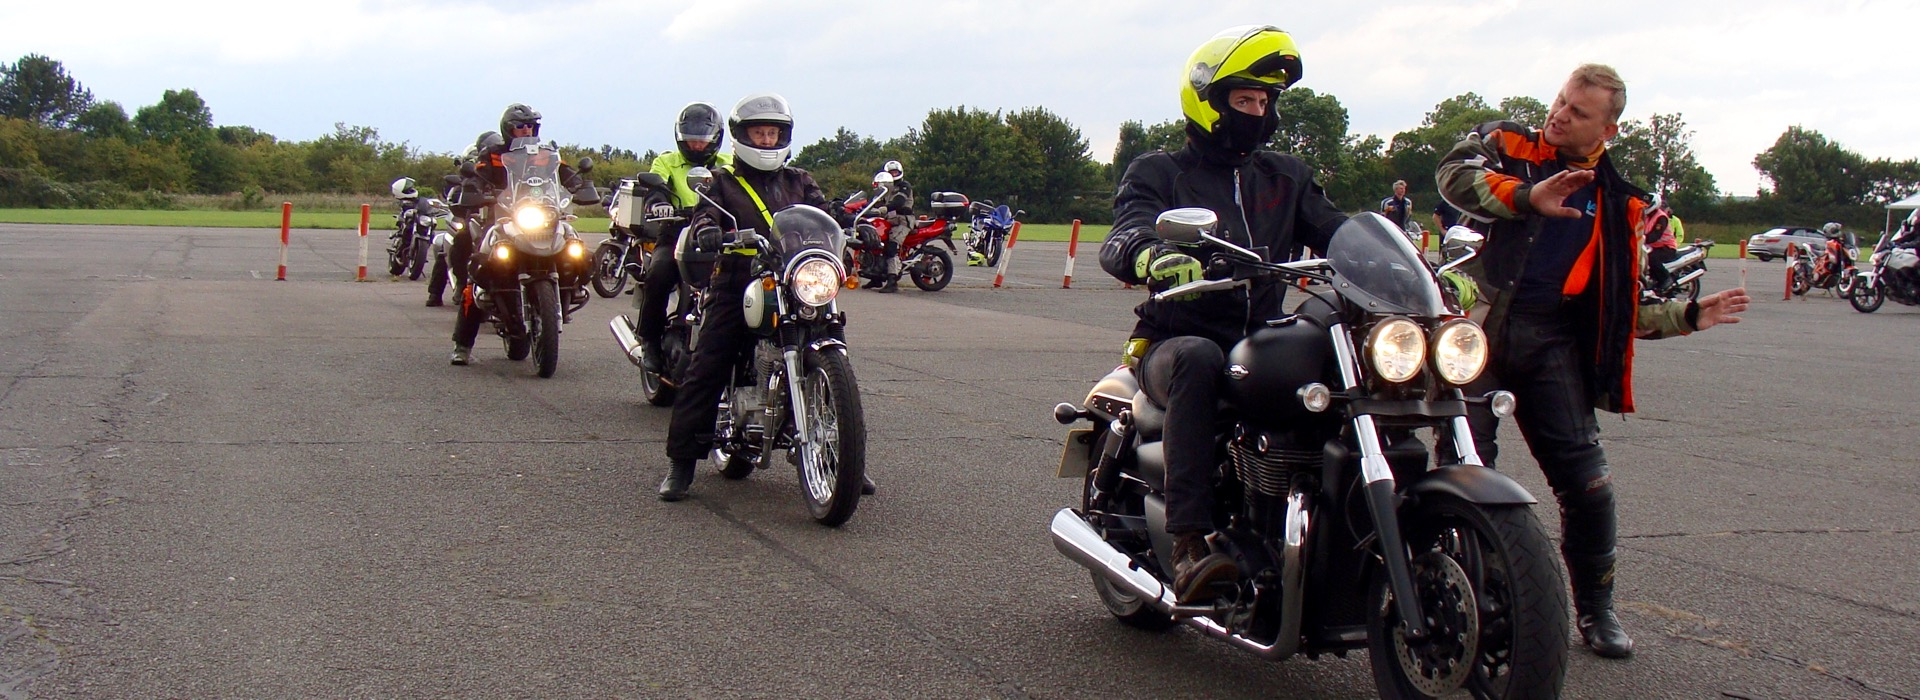 East London Advanced Motorcyclists